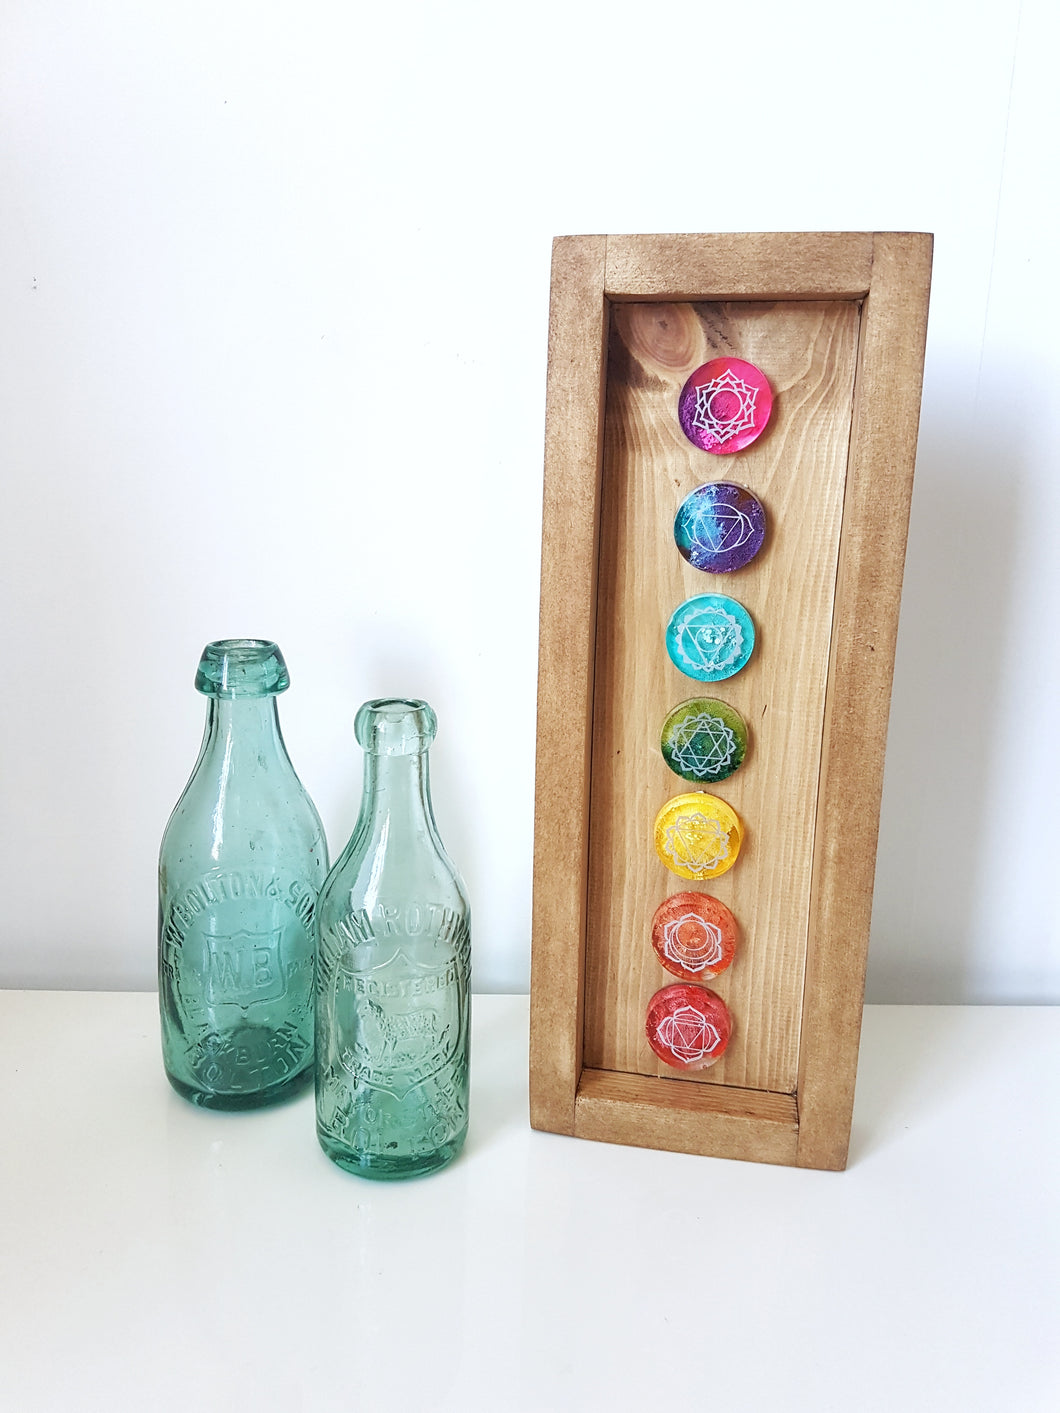 Chakra resin wall art box frame